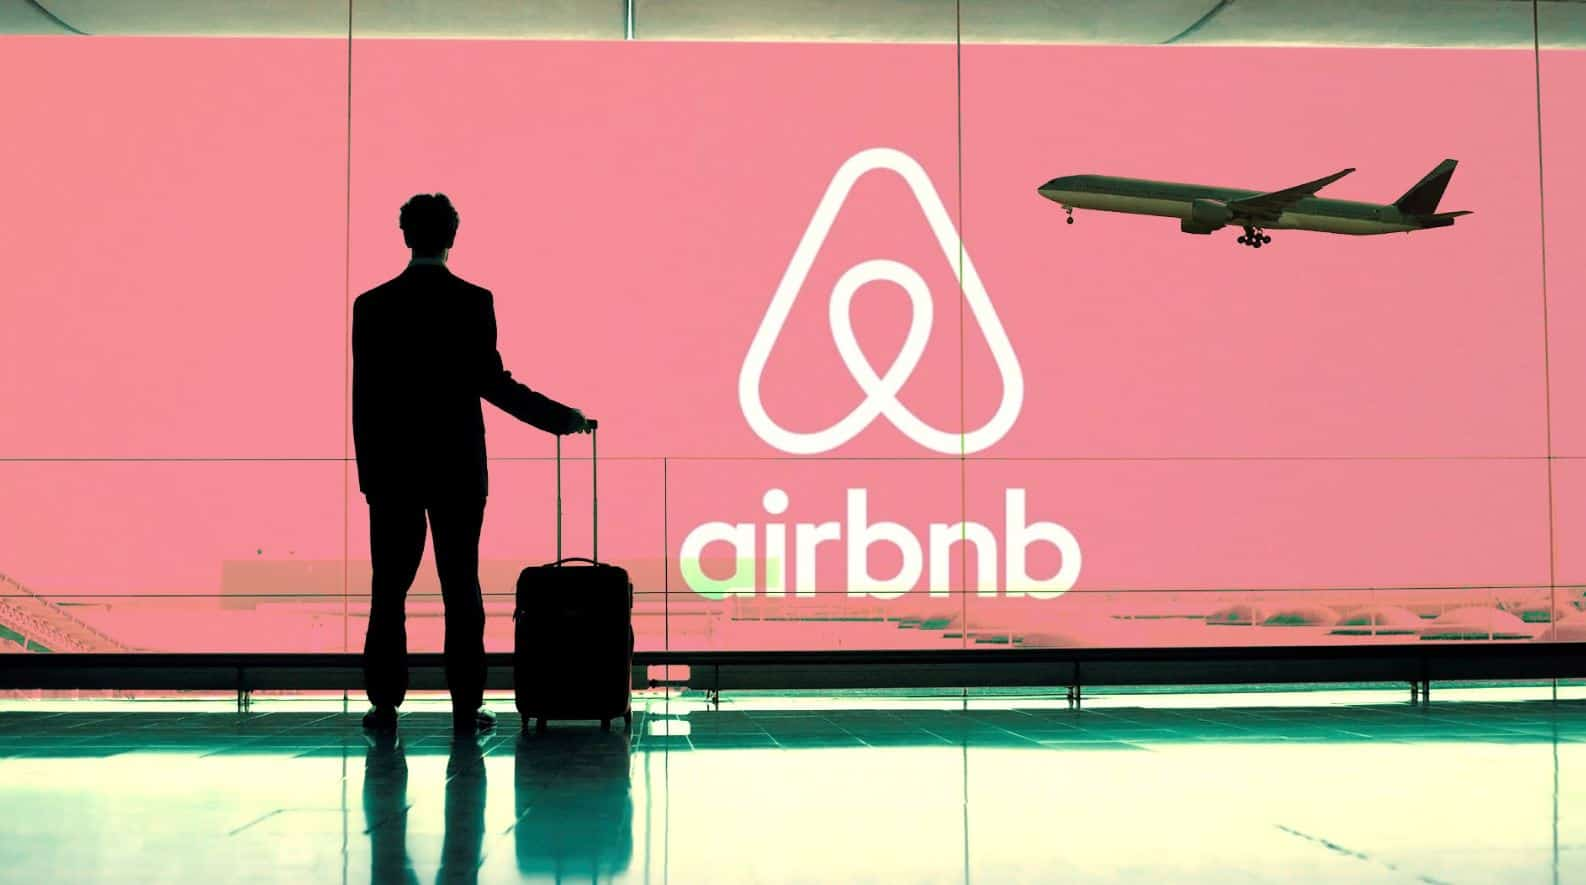 Travel tip: Why is travelling with Airbnb great